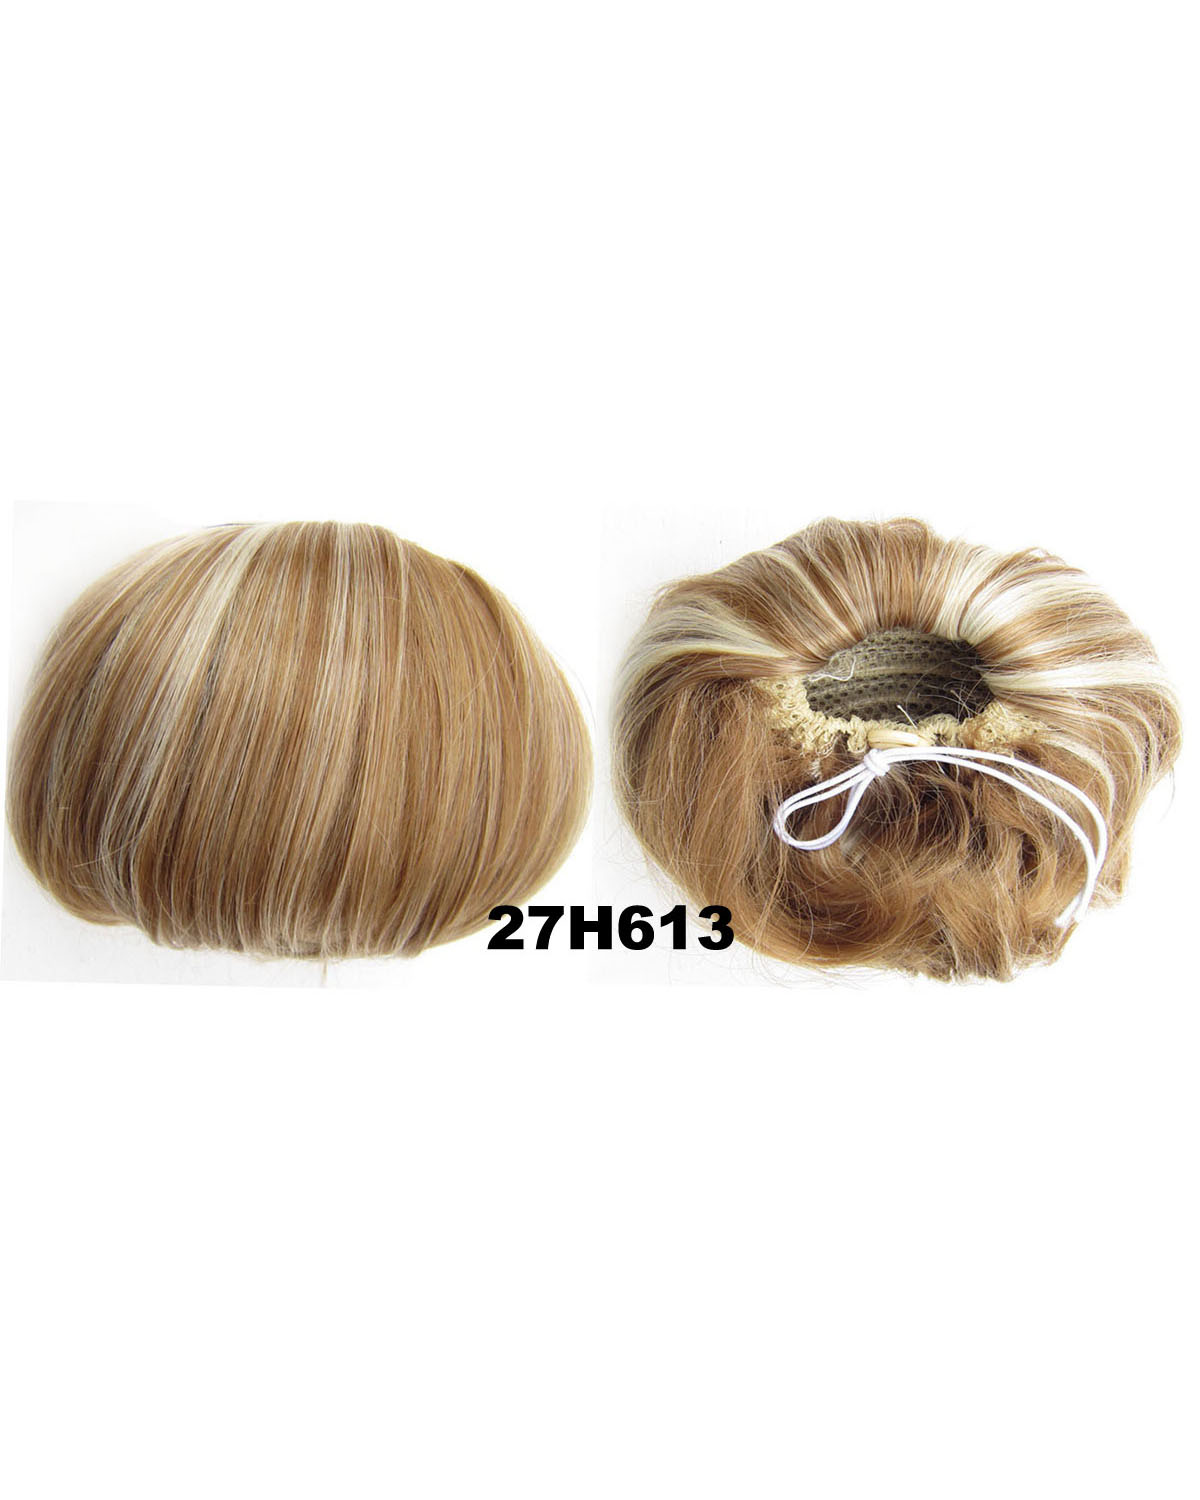 Ladies Fashionable Straight Short Hair Buns Drawstring Synthetic Hair Extension Bride Scrunchies  27H613